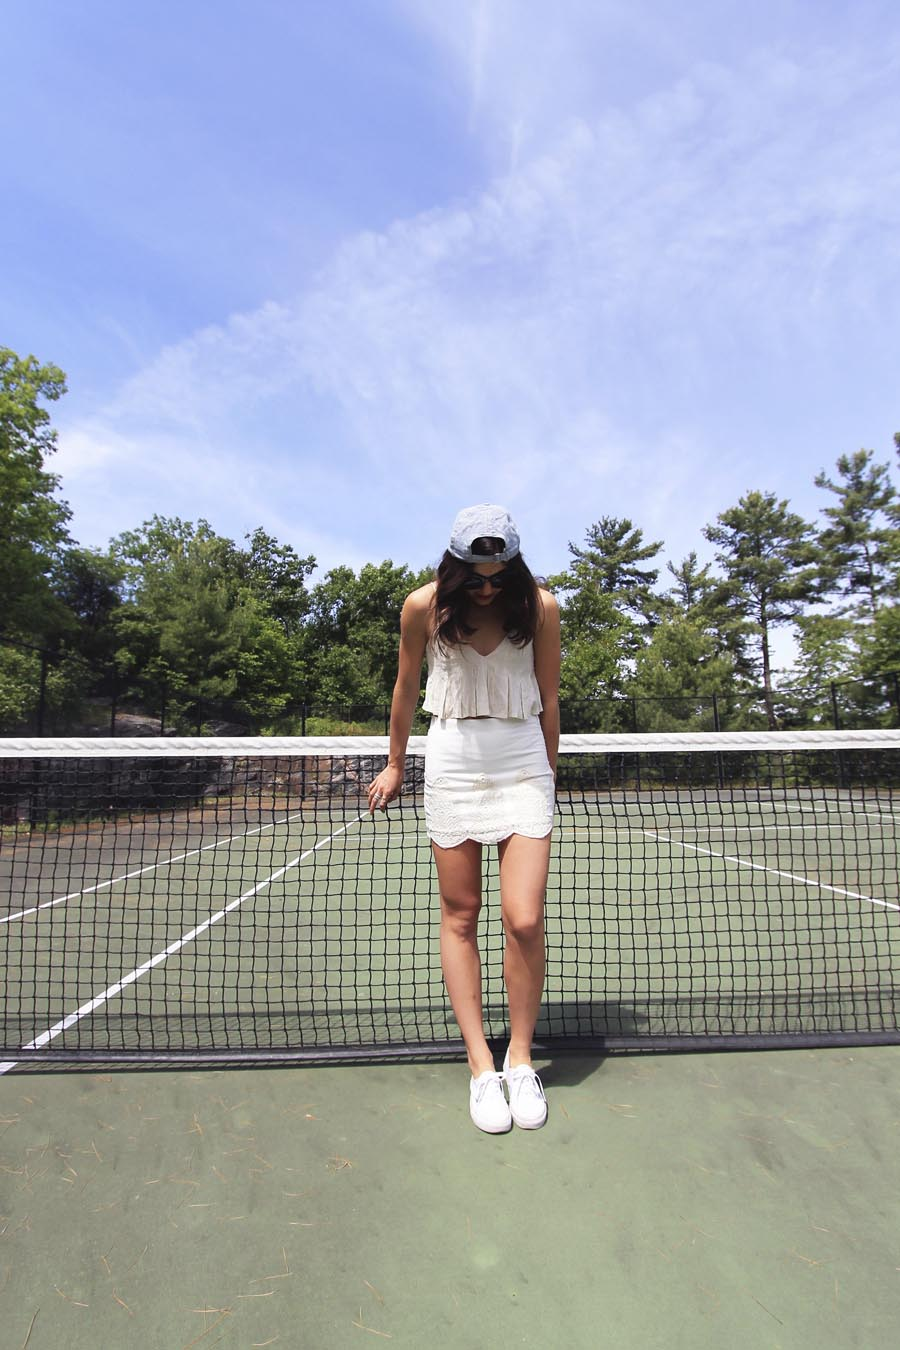 toronto-outfit-style-fashion-bogger-tennis-court1.jpg